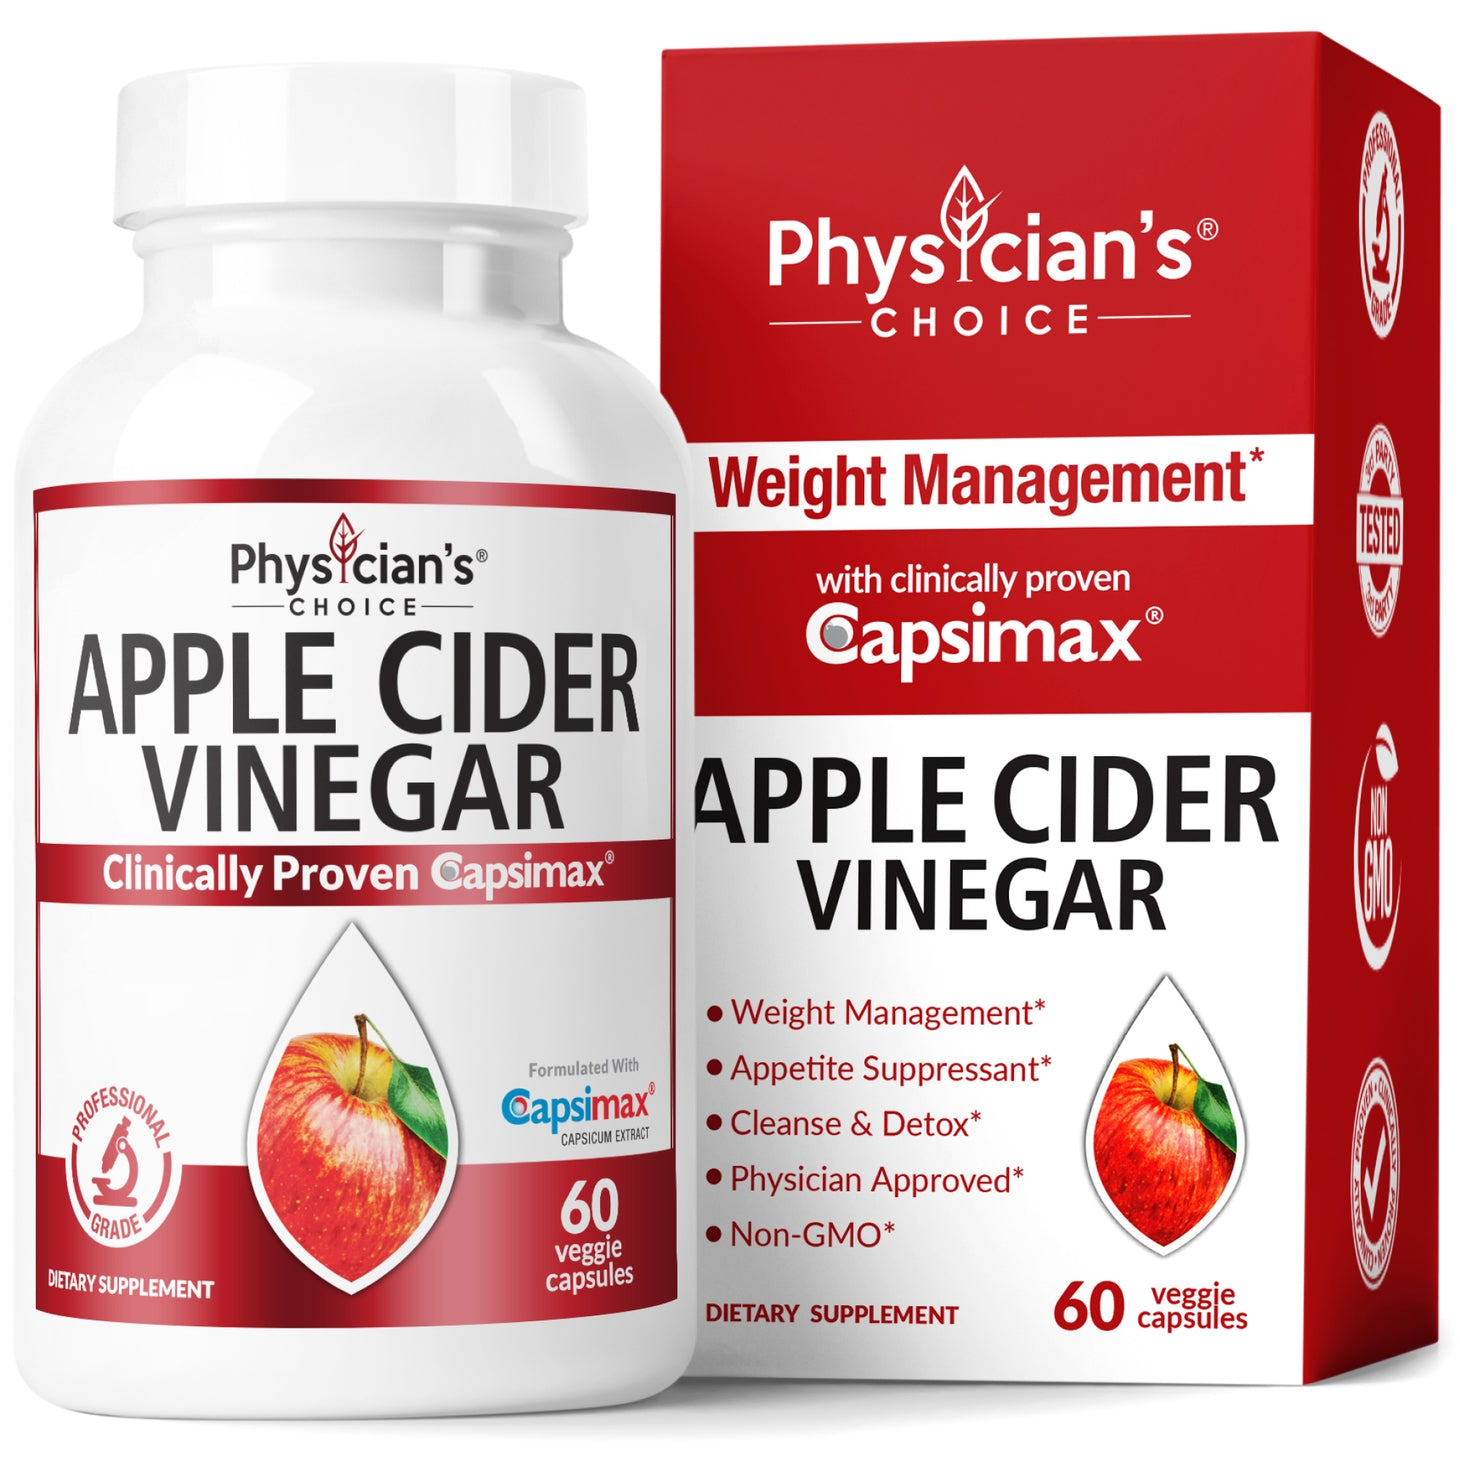 Product Spotlight: Apple Cider Vinegar Capsules